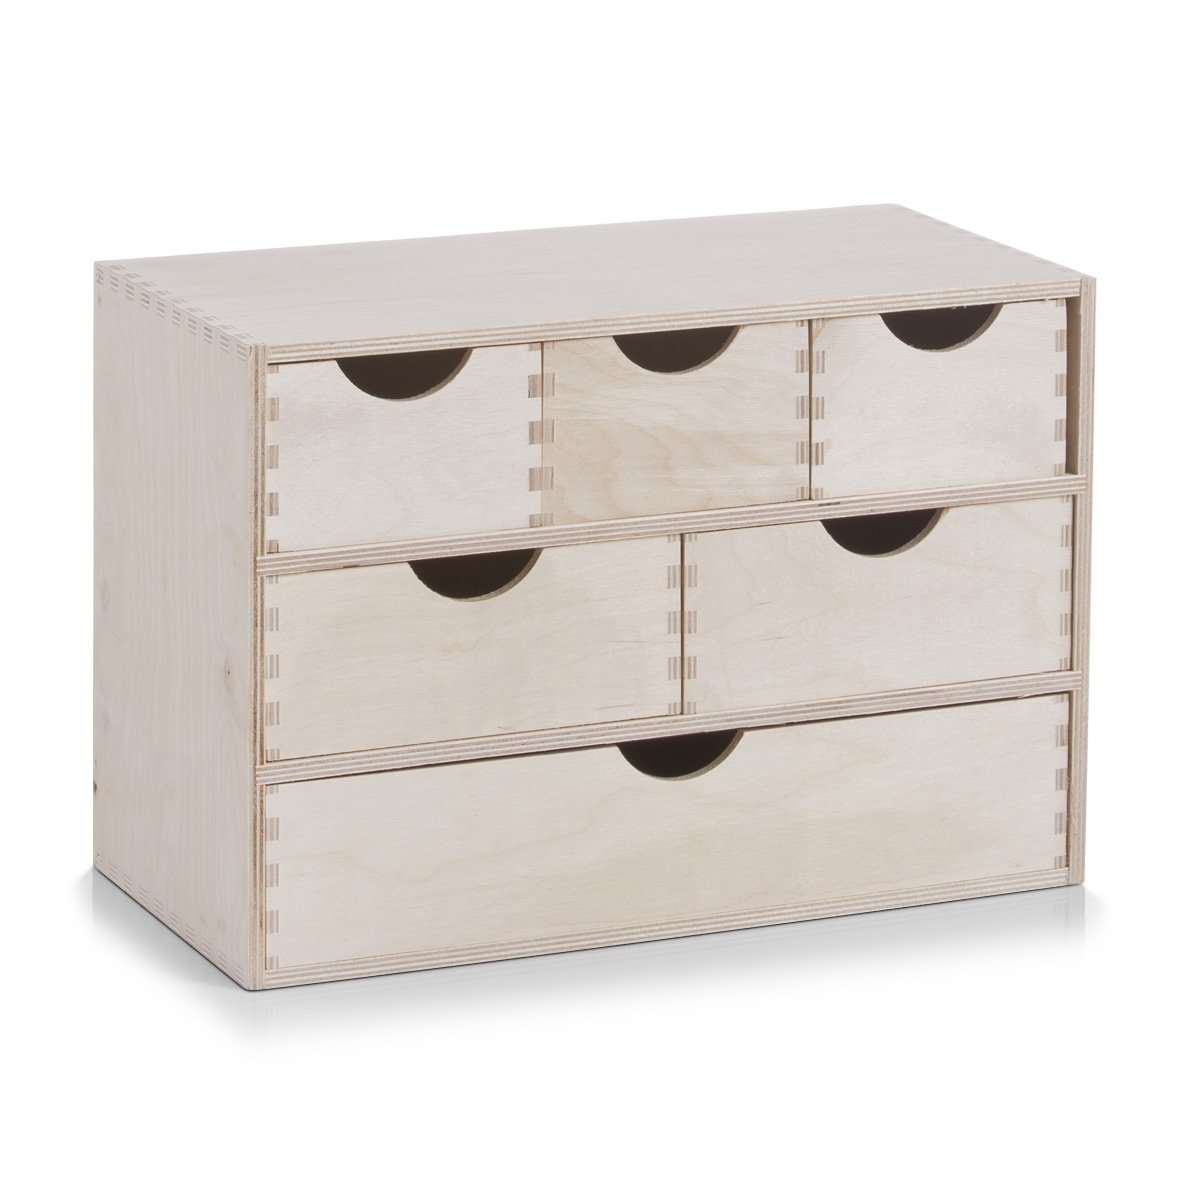 Zeller 13193 Drawer Unit of 6 Drawers Birch 40 x 20 x 28 cm